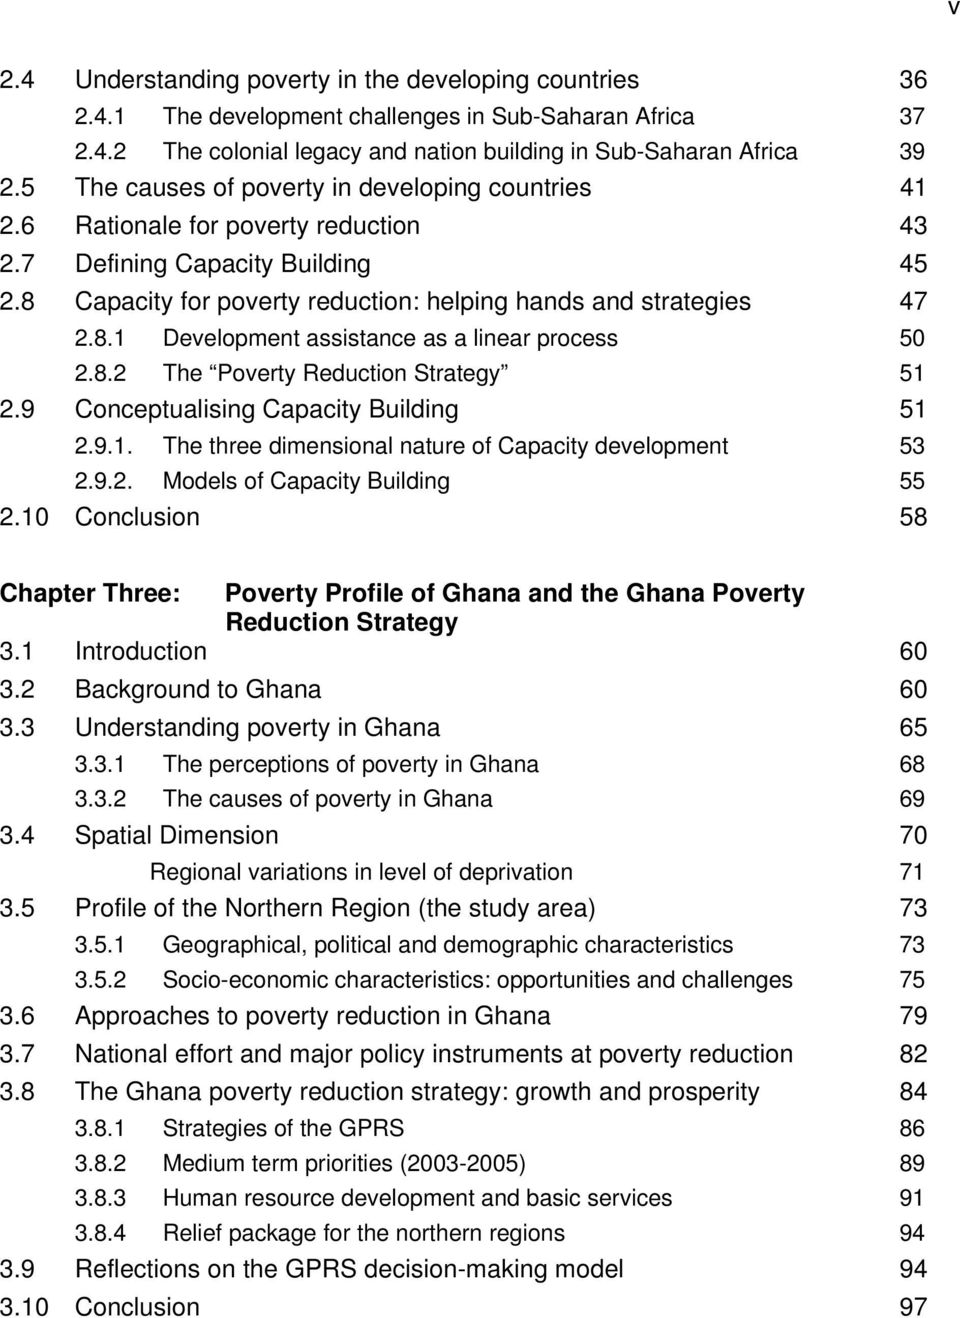 8.2 The Poverty Reduction Strategy 51 2.9 Conceptualising Capacity Building 51 2.9.1. The three dimensional nature of Capacity development 53 2.9.2. Models of Capacity Building 55 2.